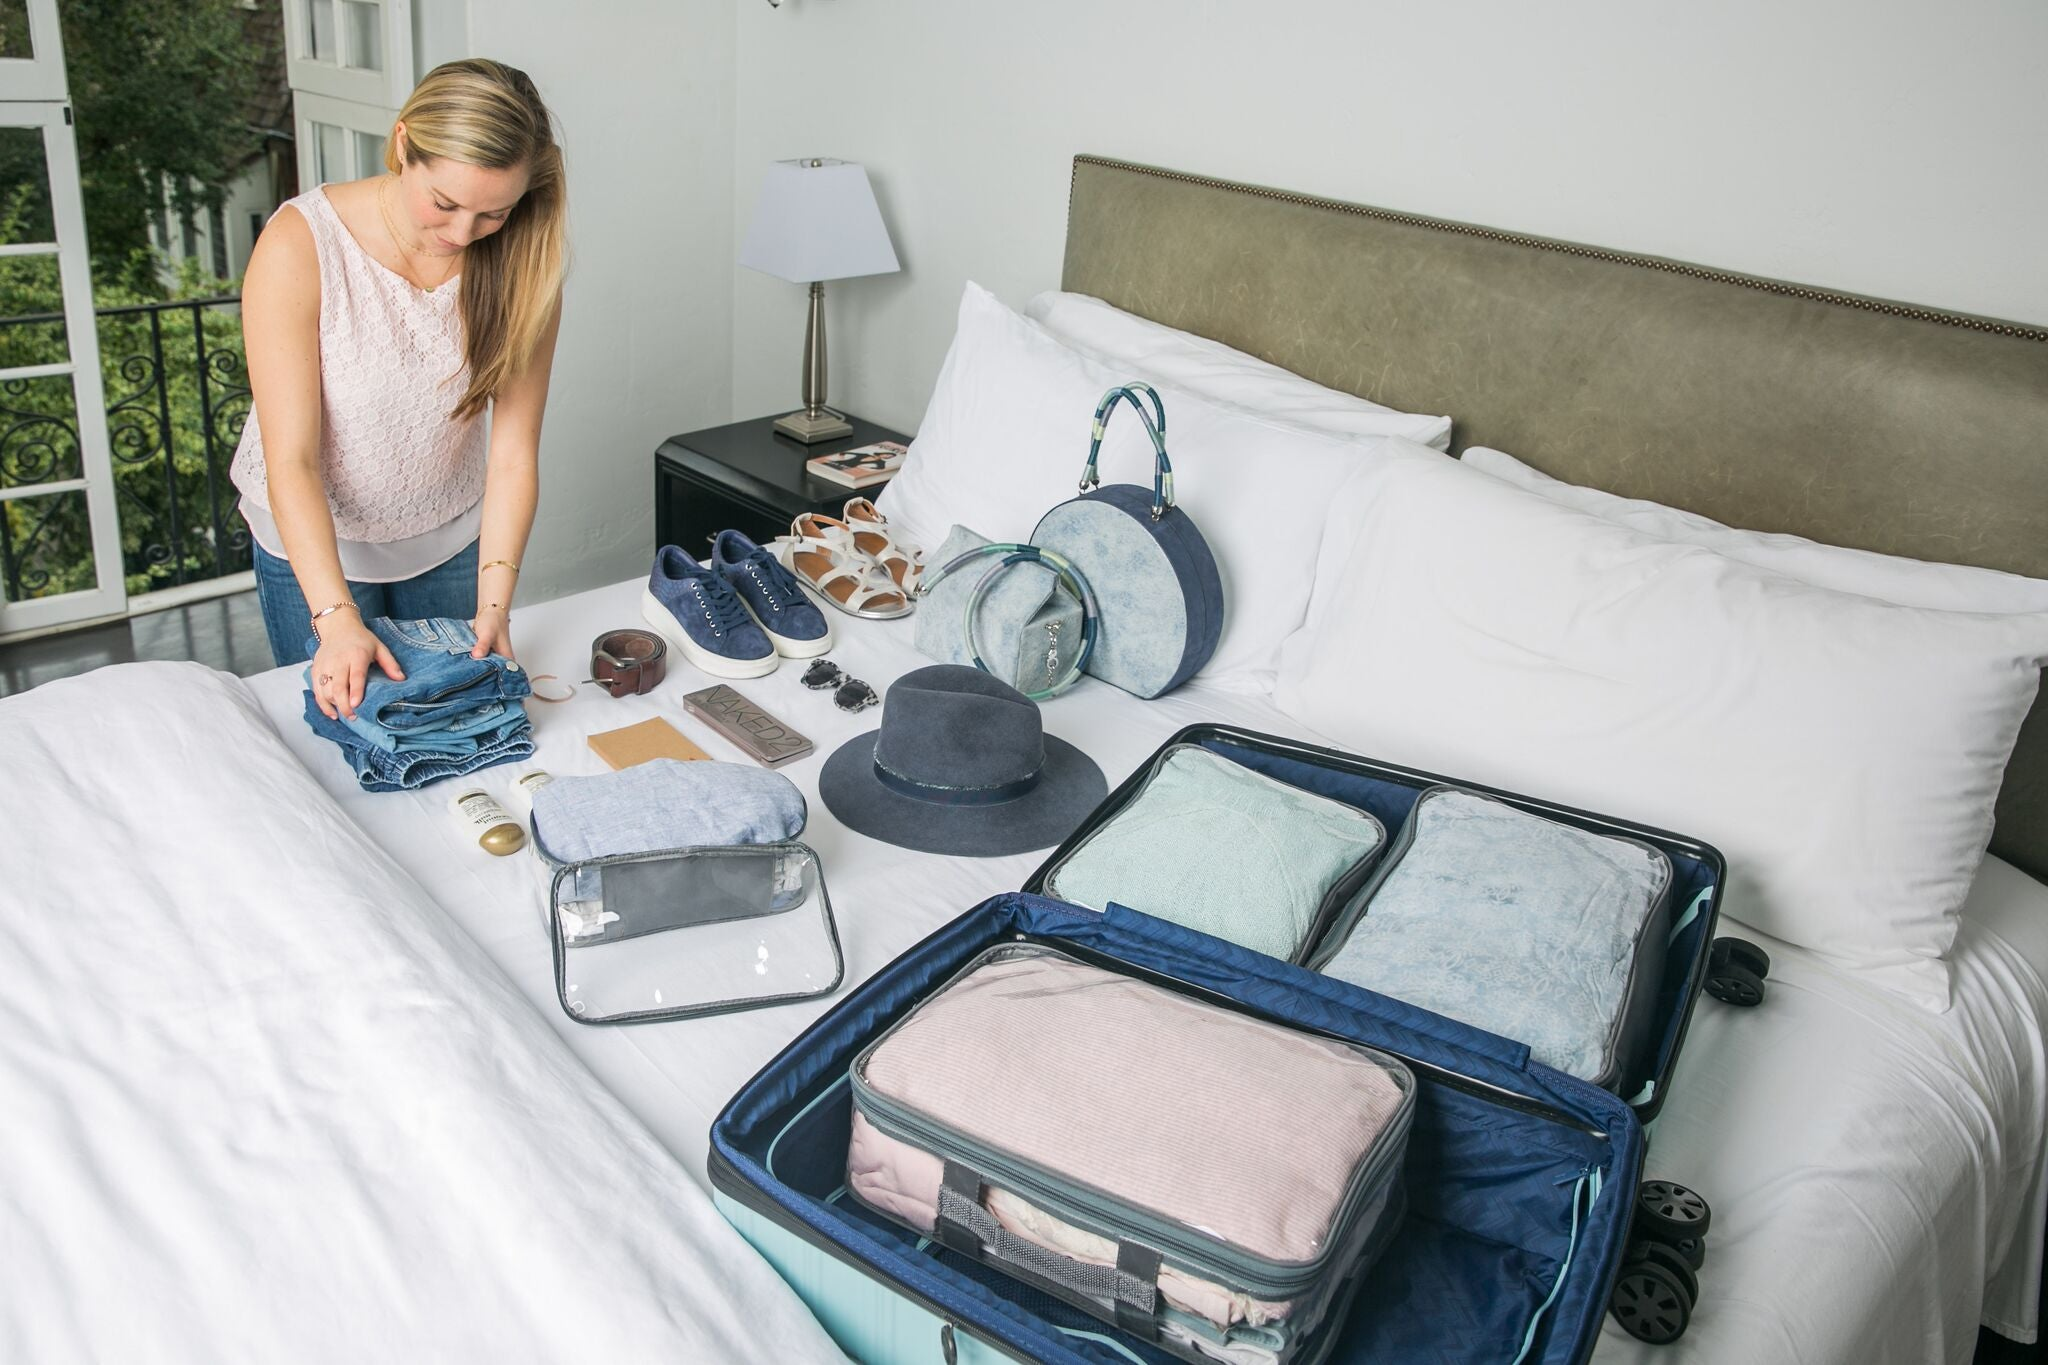 Woman organizing suitcase using packing cubes